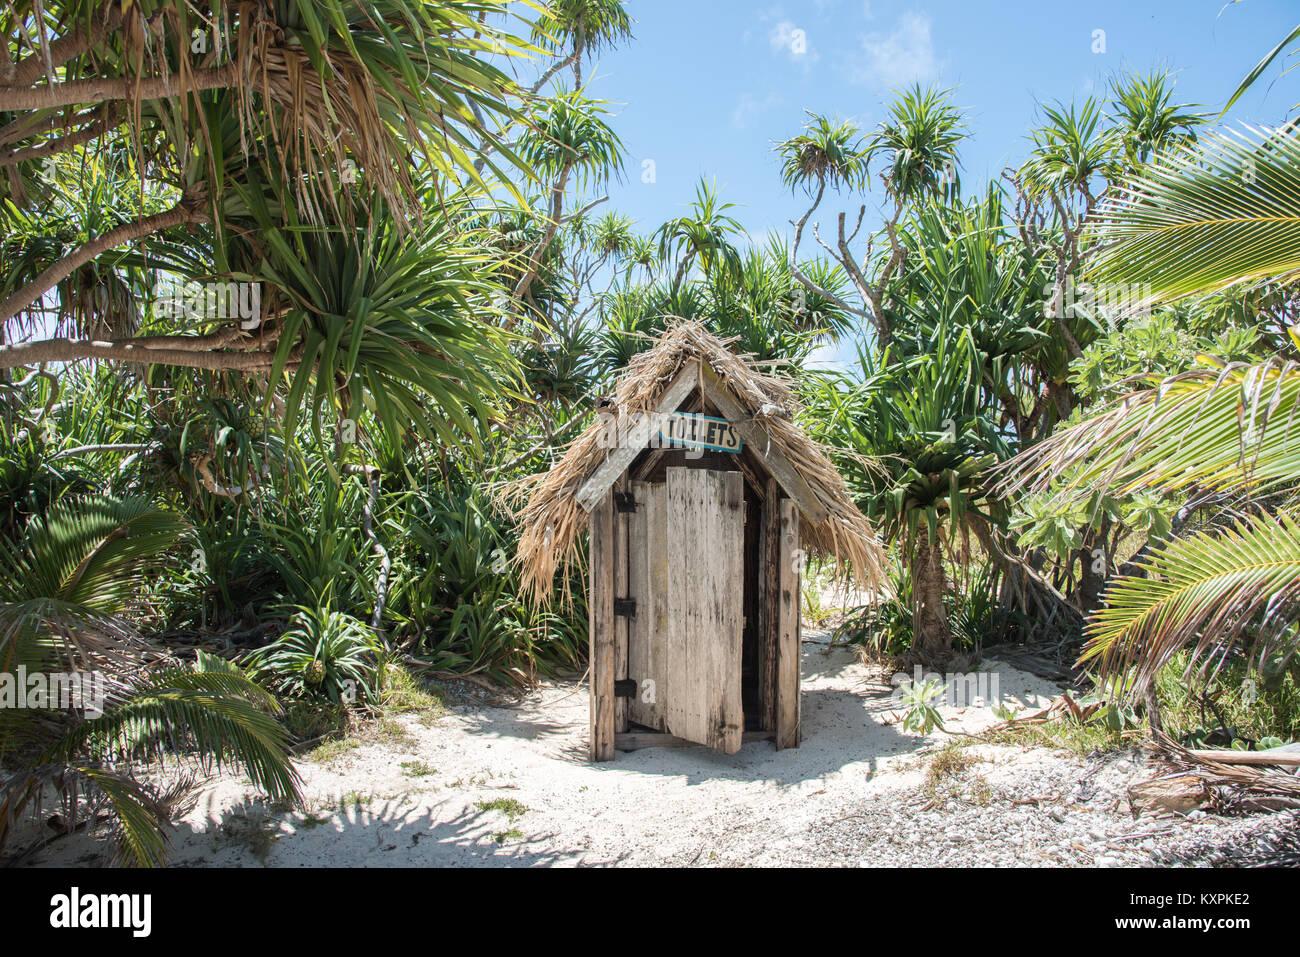 Rustic toilet in the remote tropical rainforest on the uninhabited Mystery Island, Vanuatu - Stock Image